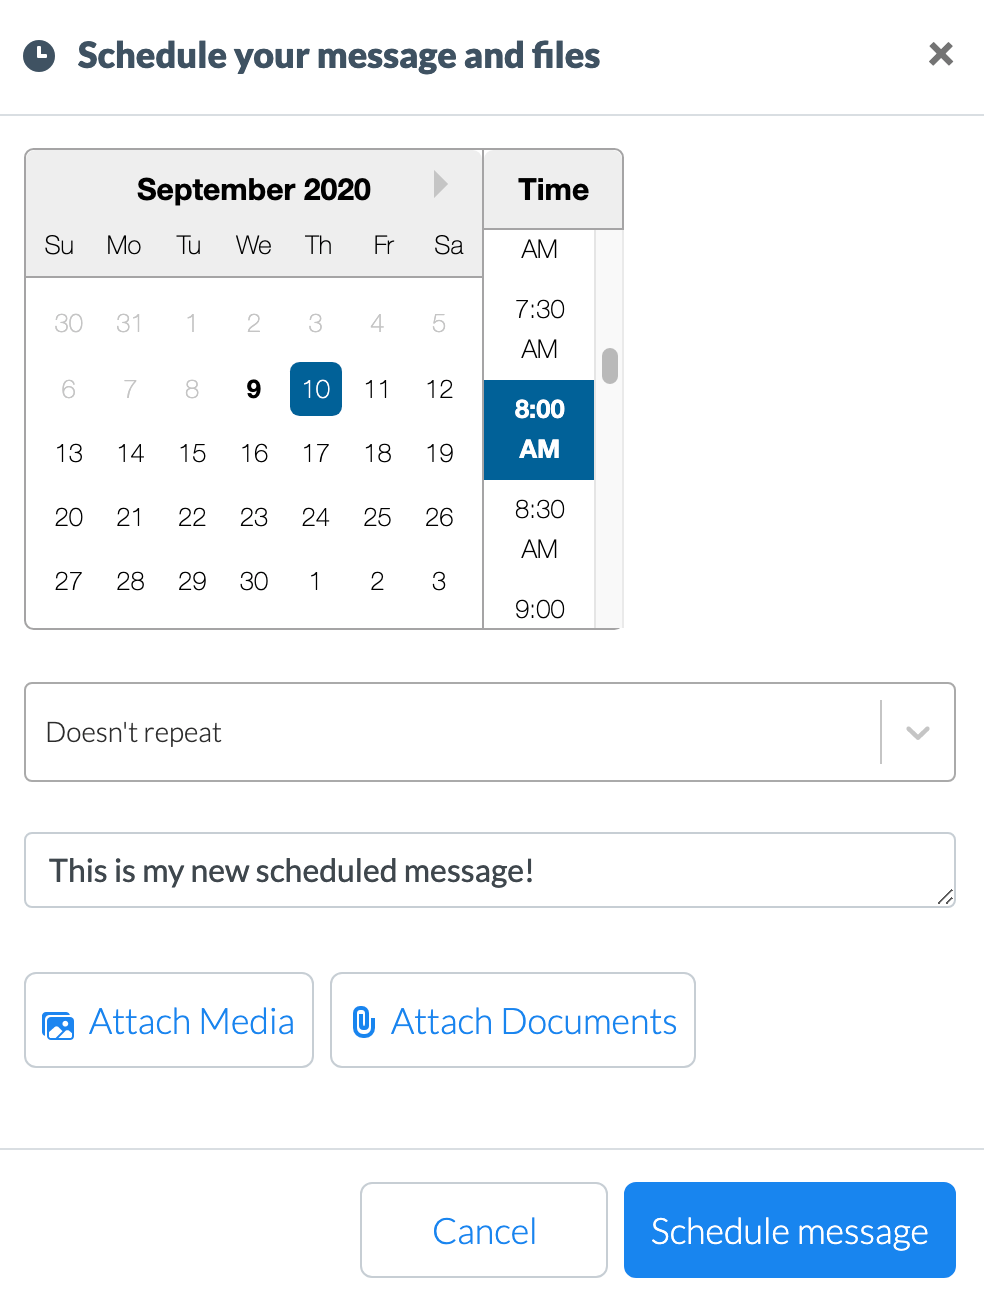 Scheduling messages